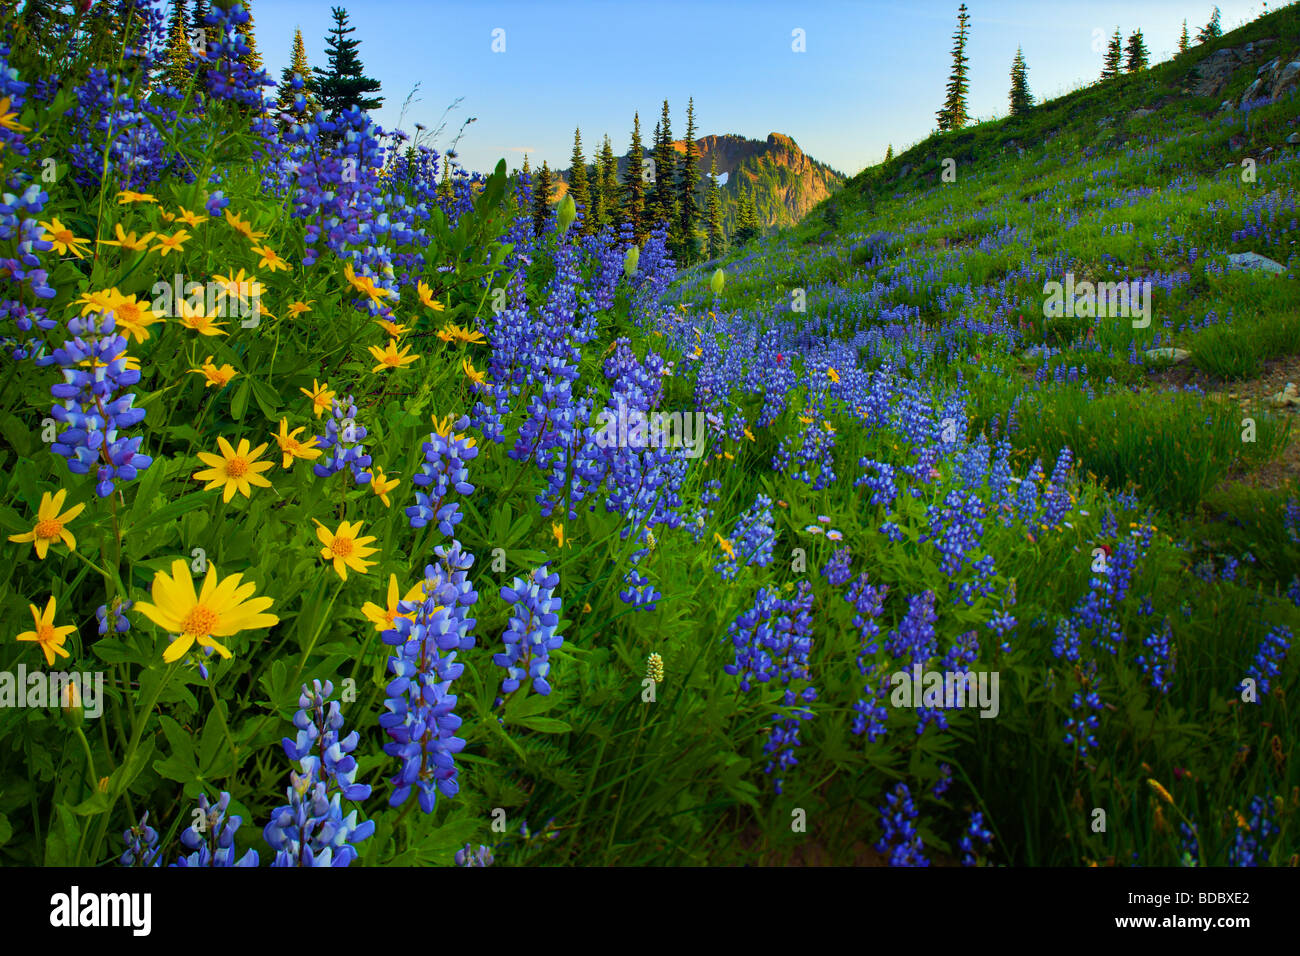 Lupines and sunflowers along Naches Peak trail in Mount Rainier National Park - Stock Image